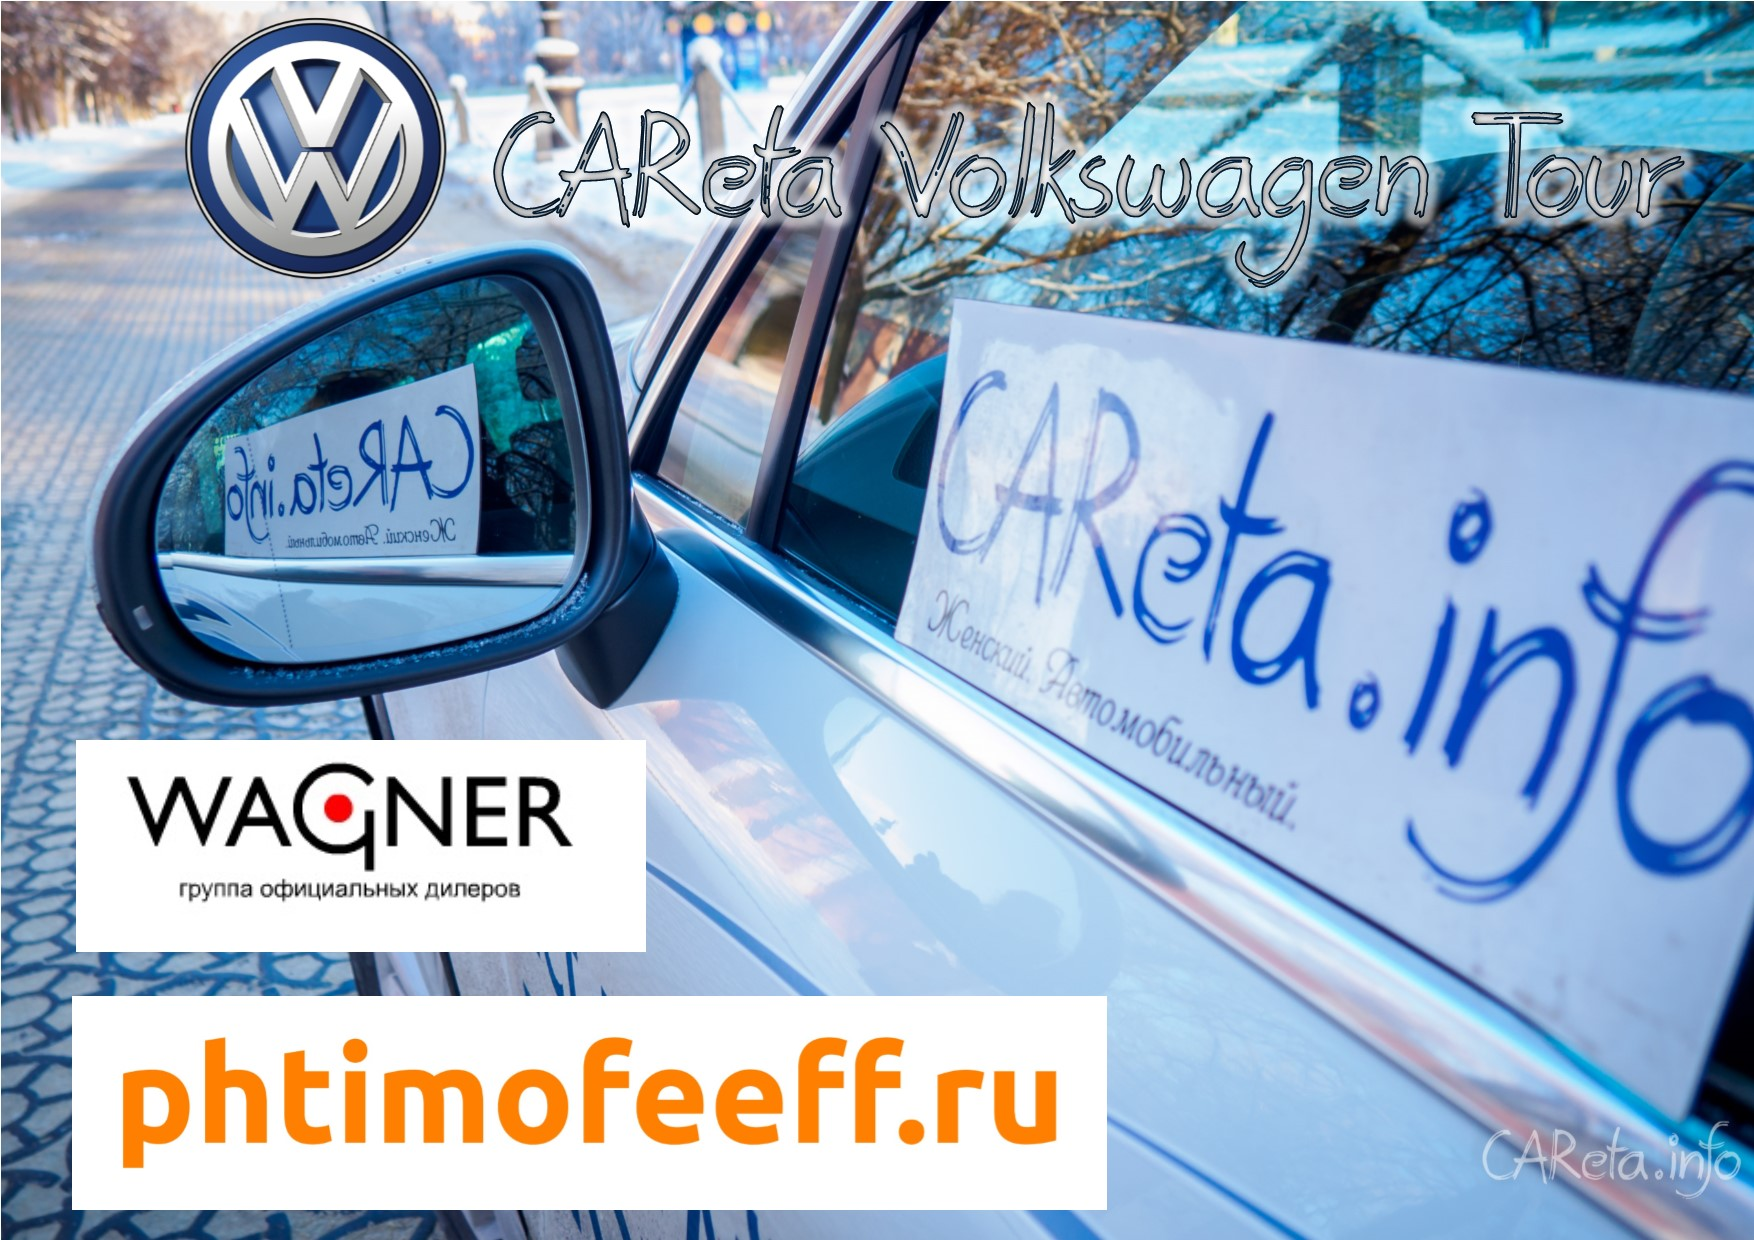 CAReta Volkswagen Tour